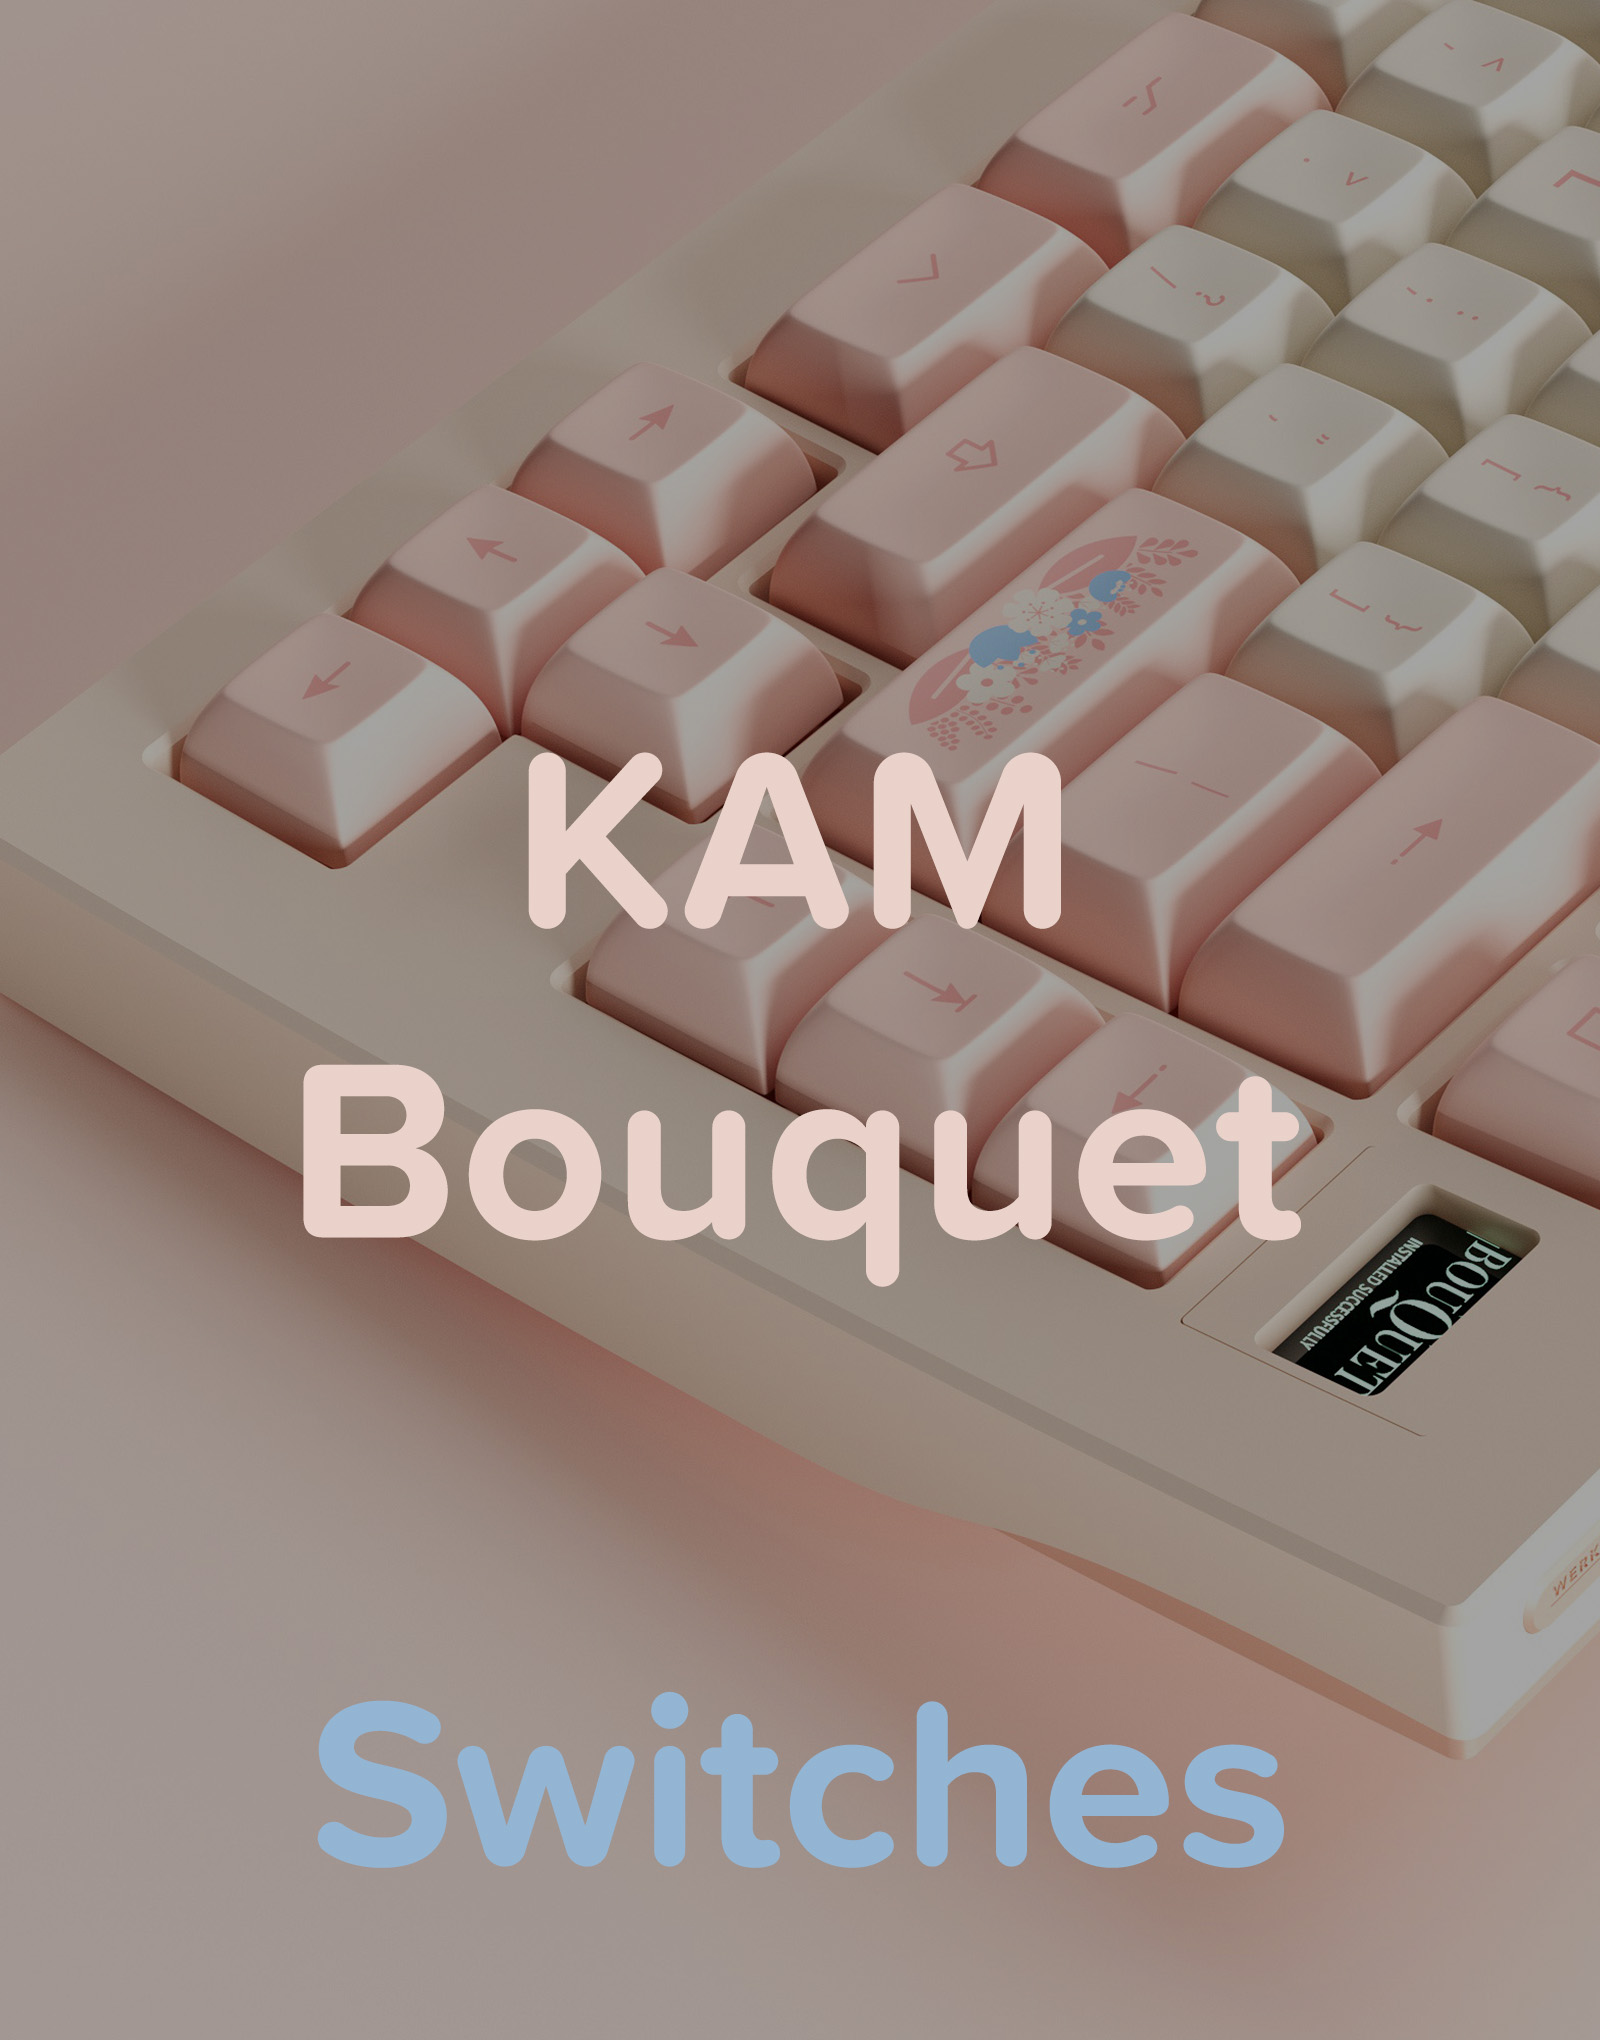 KAM Bouquet Switches